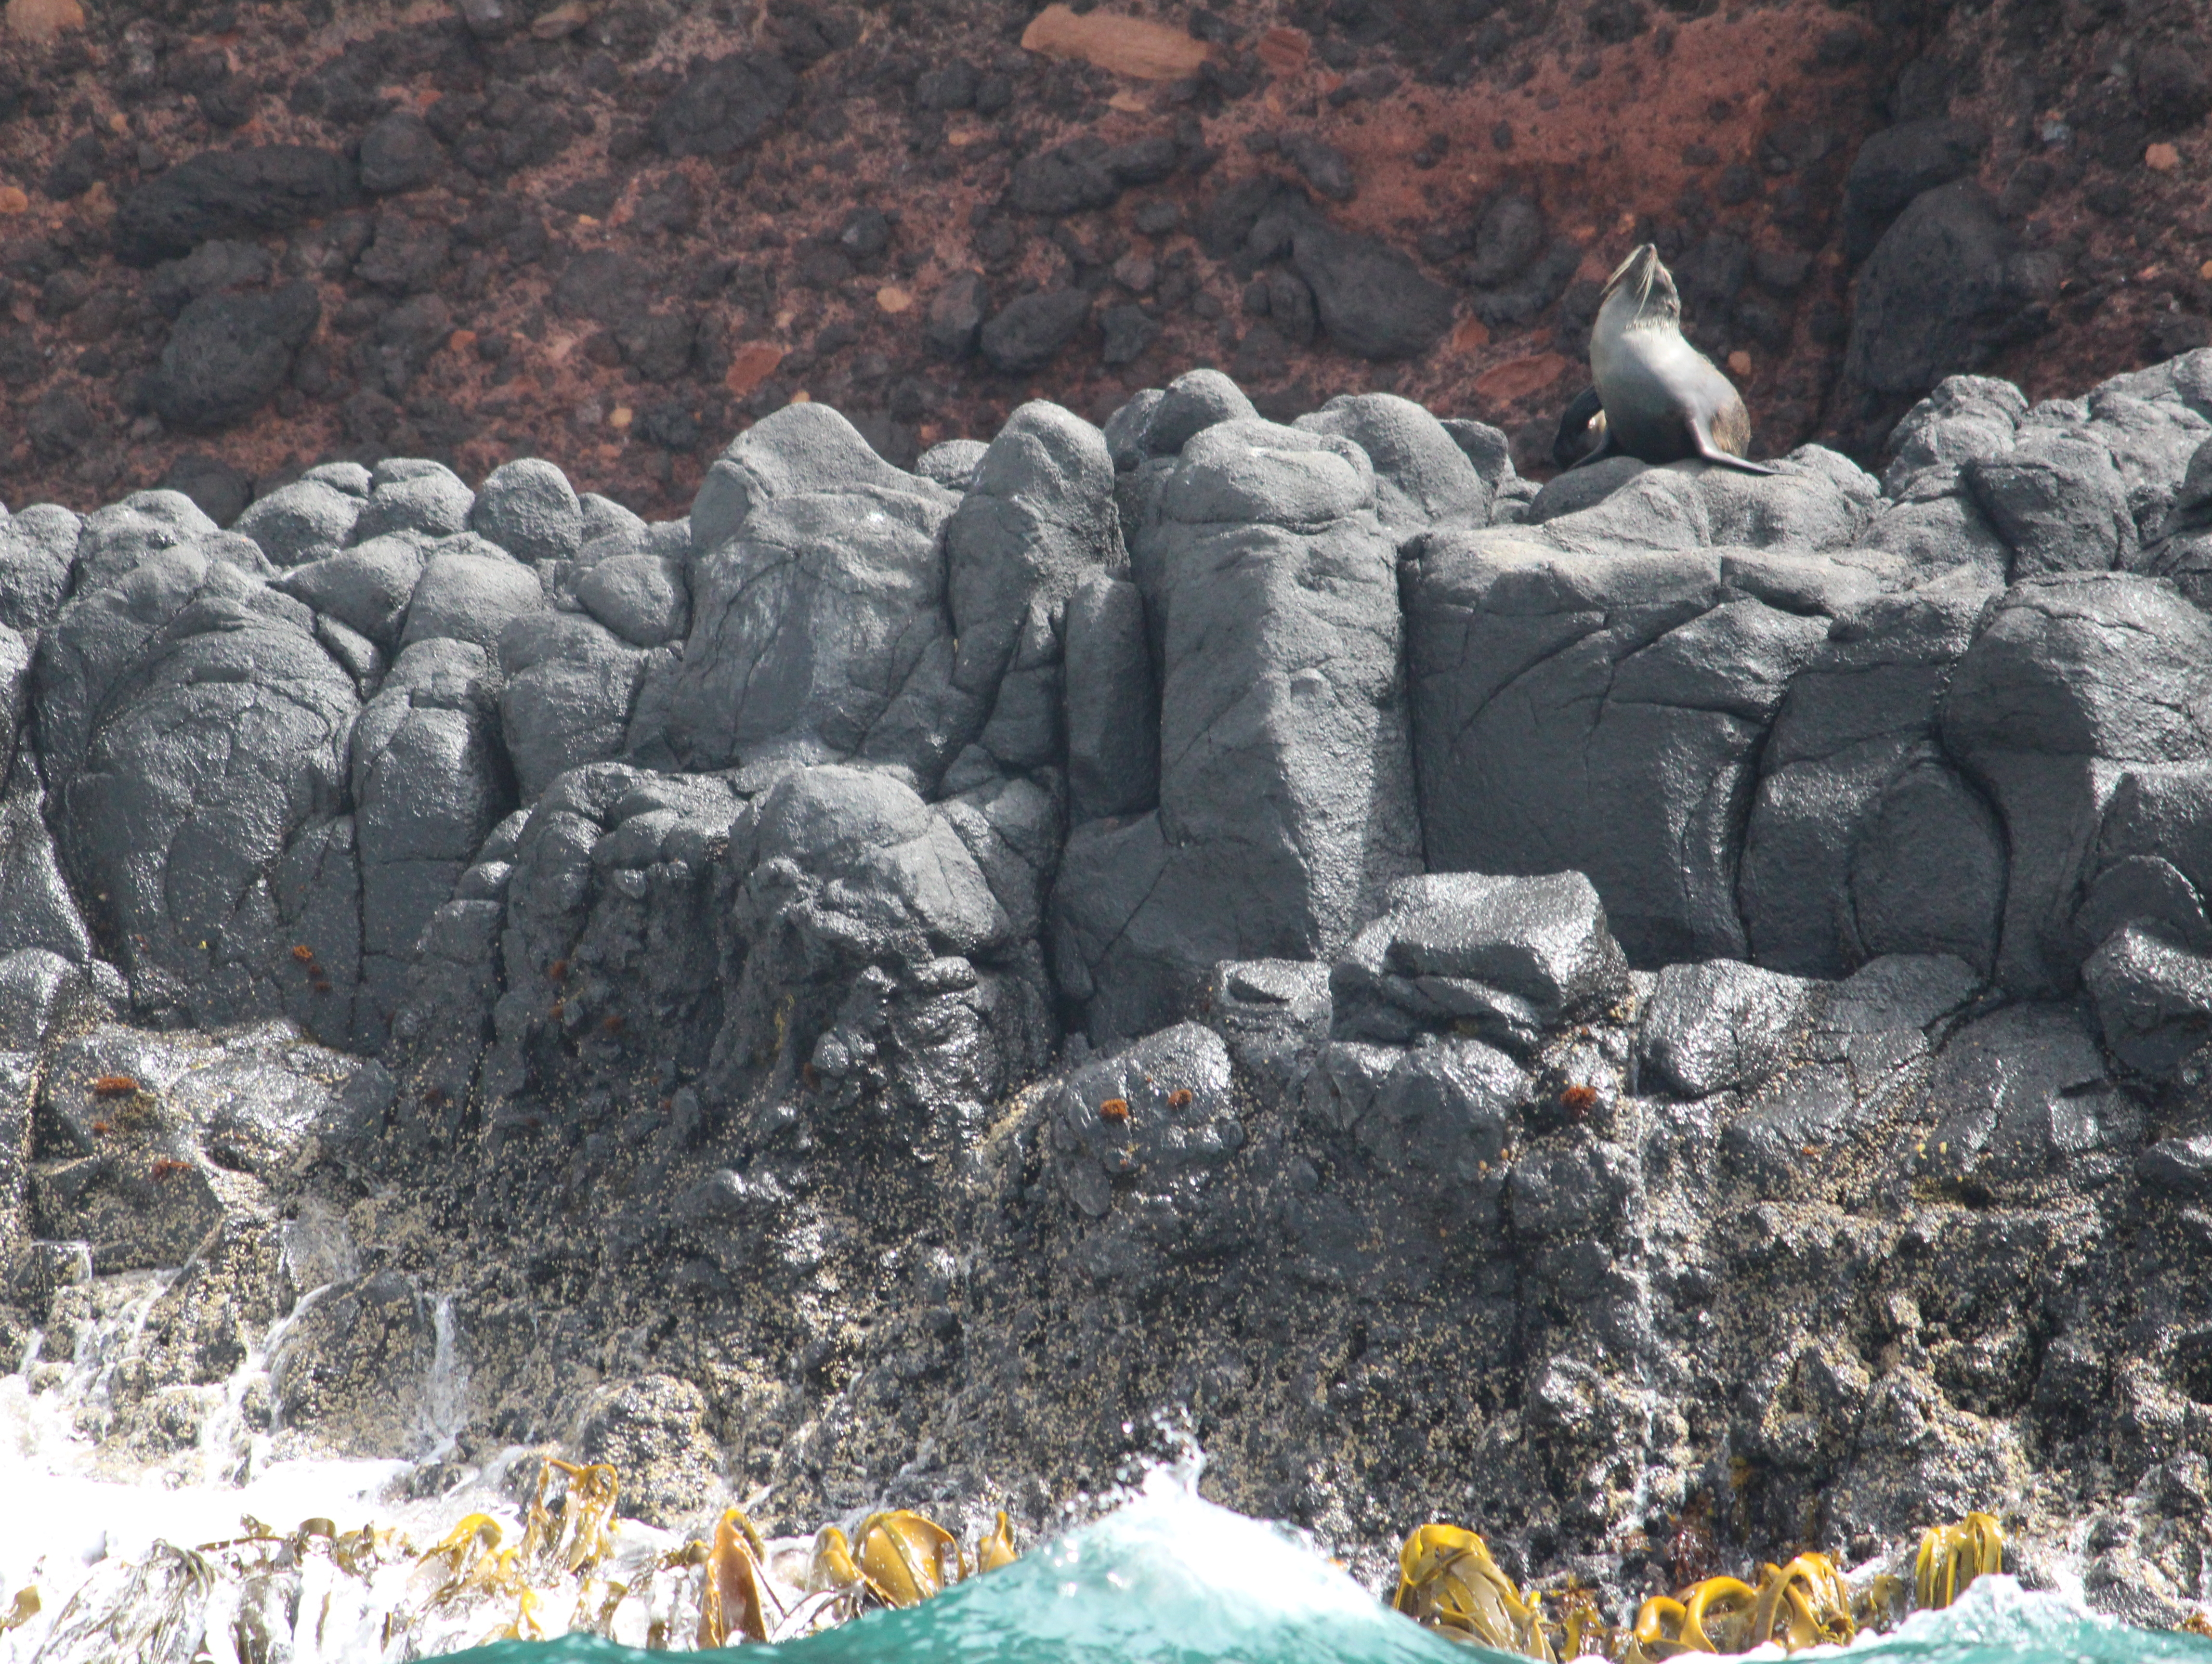 Seals from the trip out to sea.